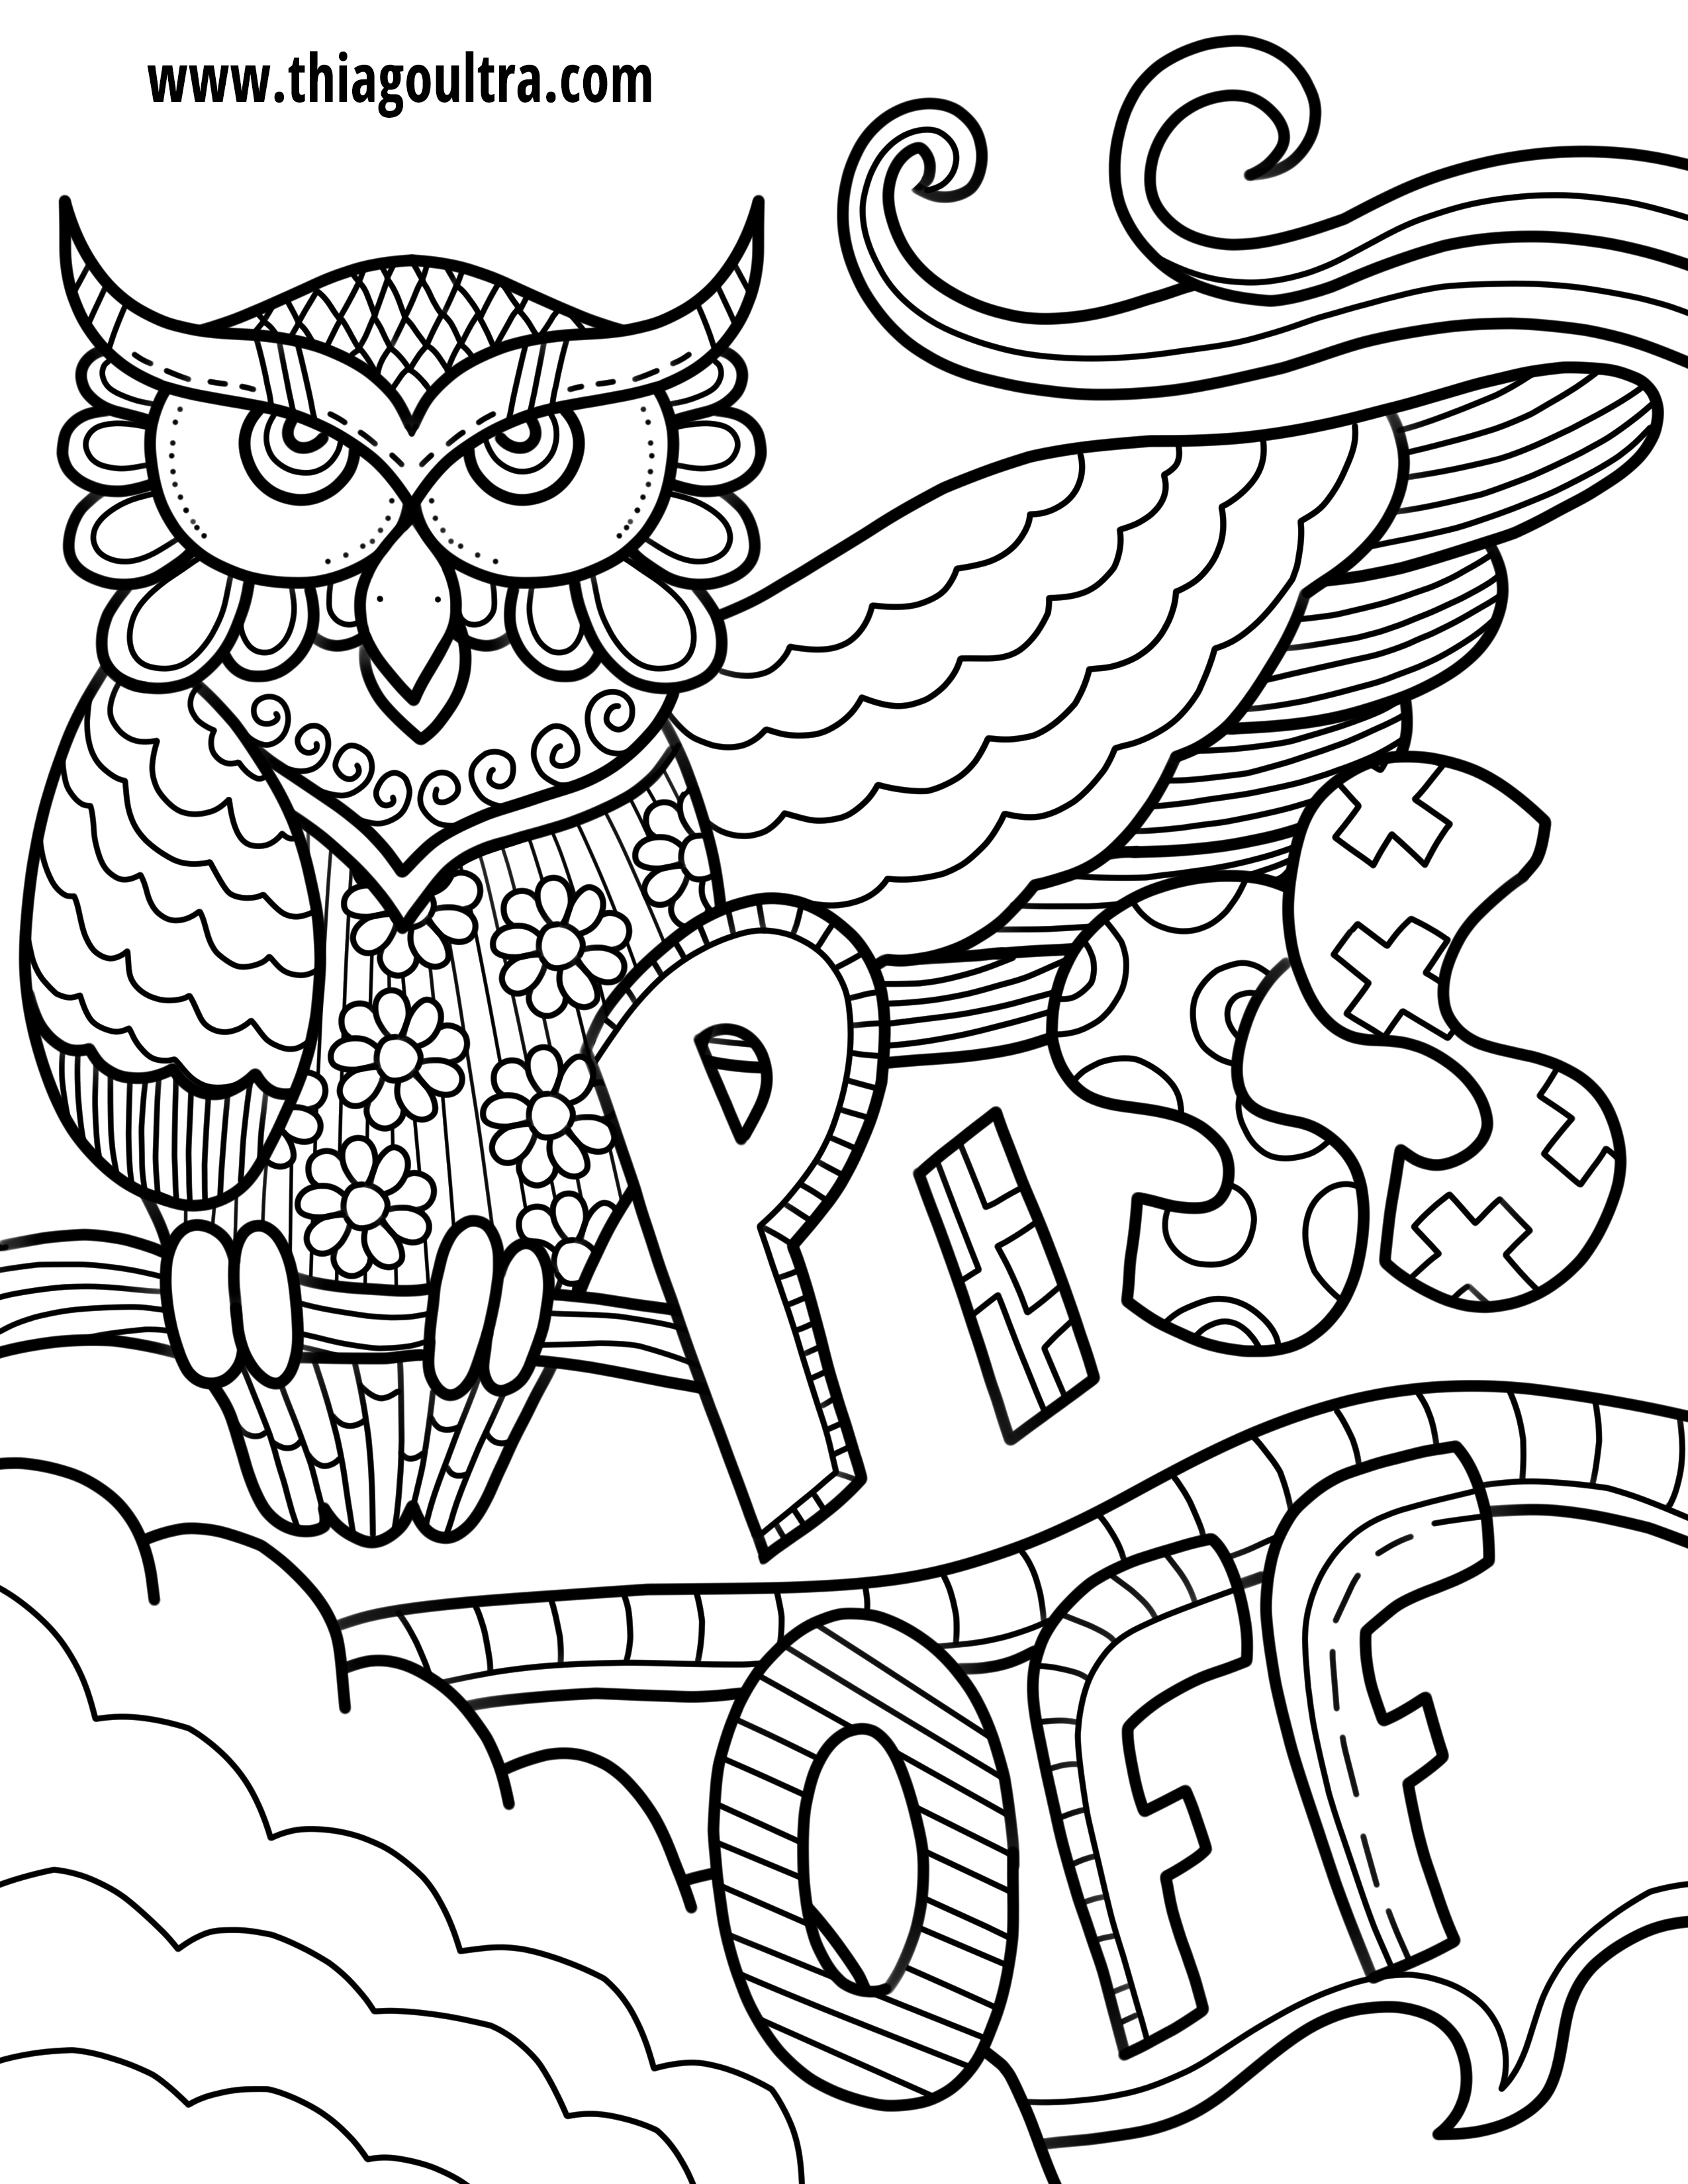 Coloring Pages : Free Coloring Pages Printable Napisy Me Reward - Free Printable Swear Word Coloring Pages